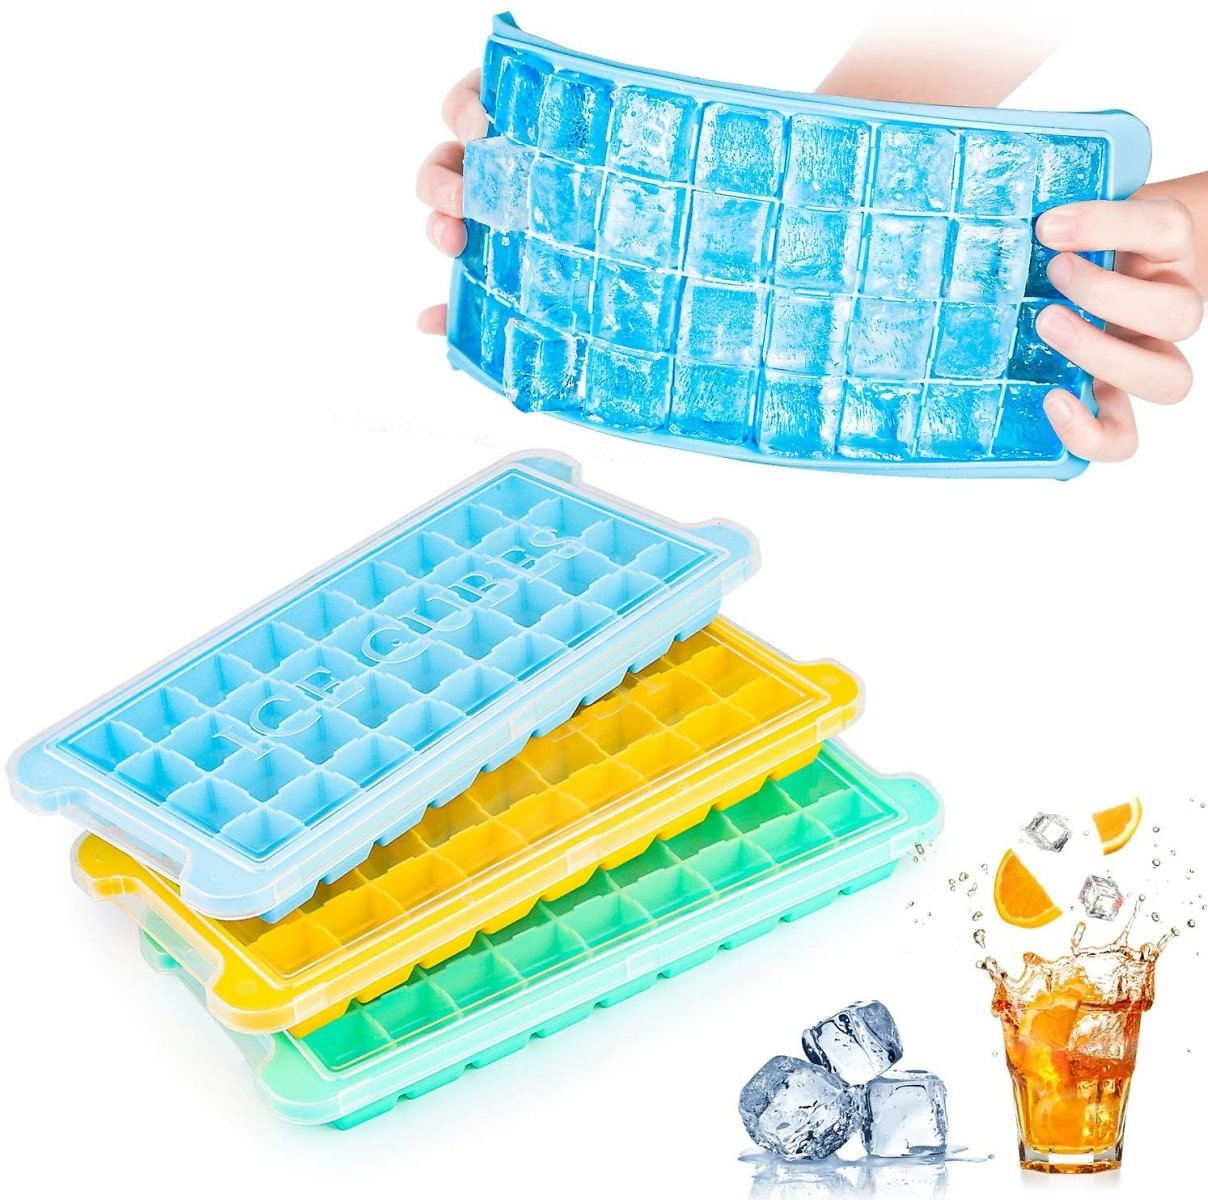 Ice Cube Trays Silicone with Lids 3 Pack, Easy Release Flexible Ice Cube Molds,36 Cubes Per Tray for Cocktail, Whiskey, Baby Foo